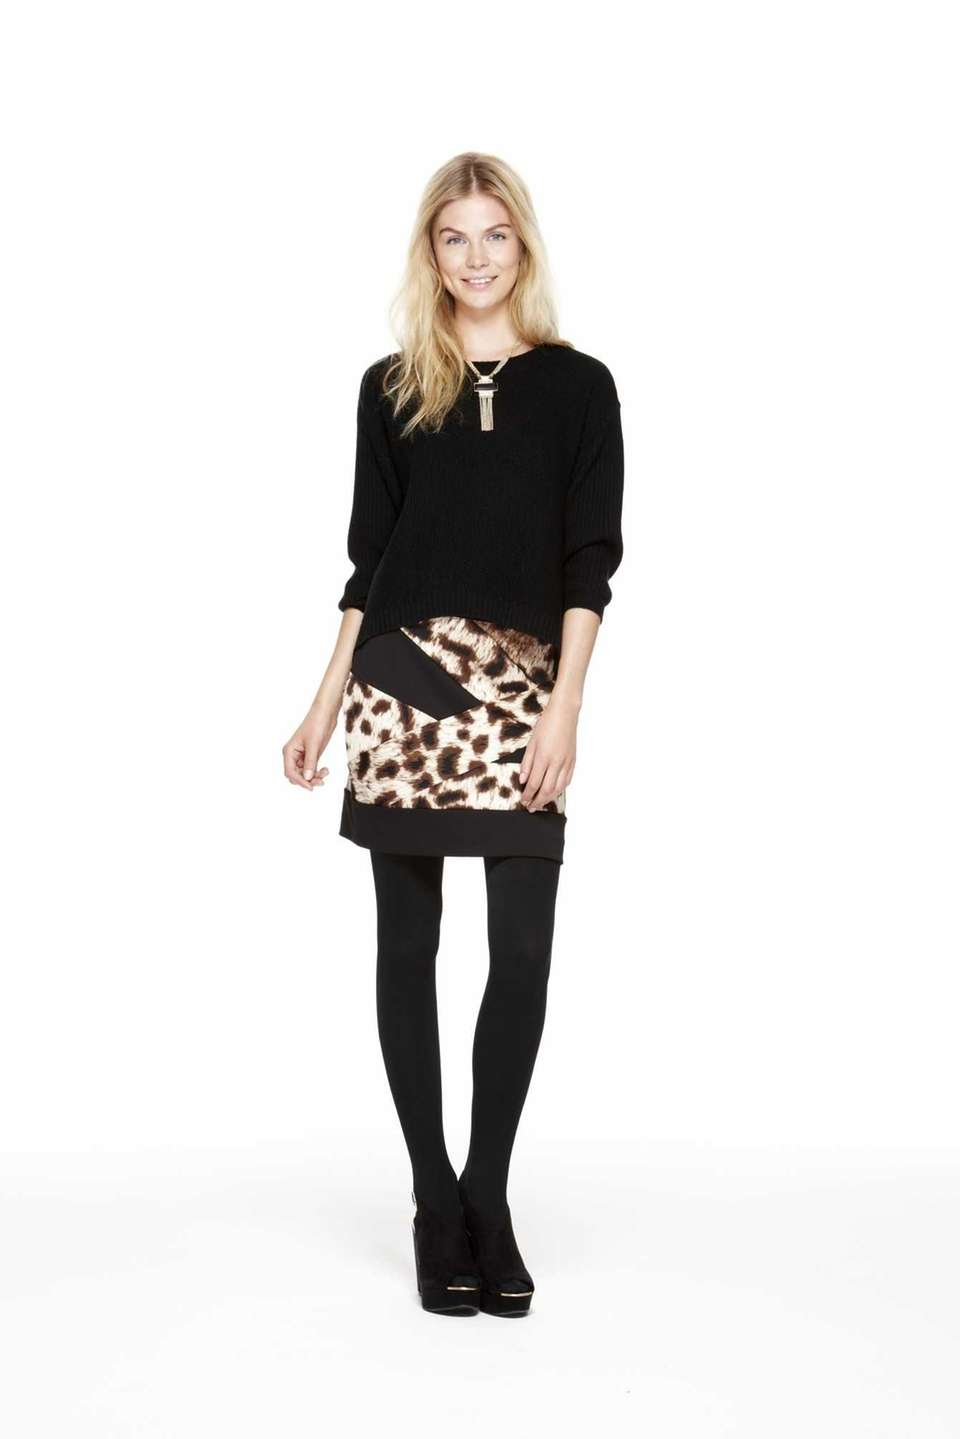 Nicole by Nicole Miller's skirt in a fun